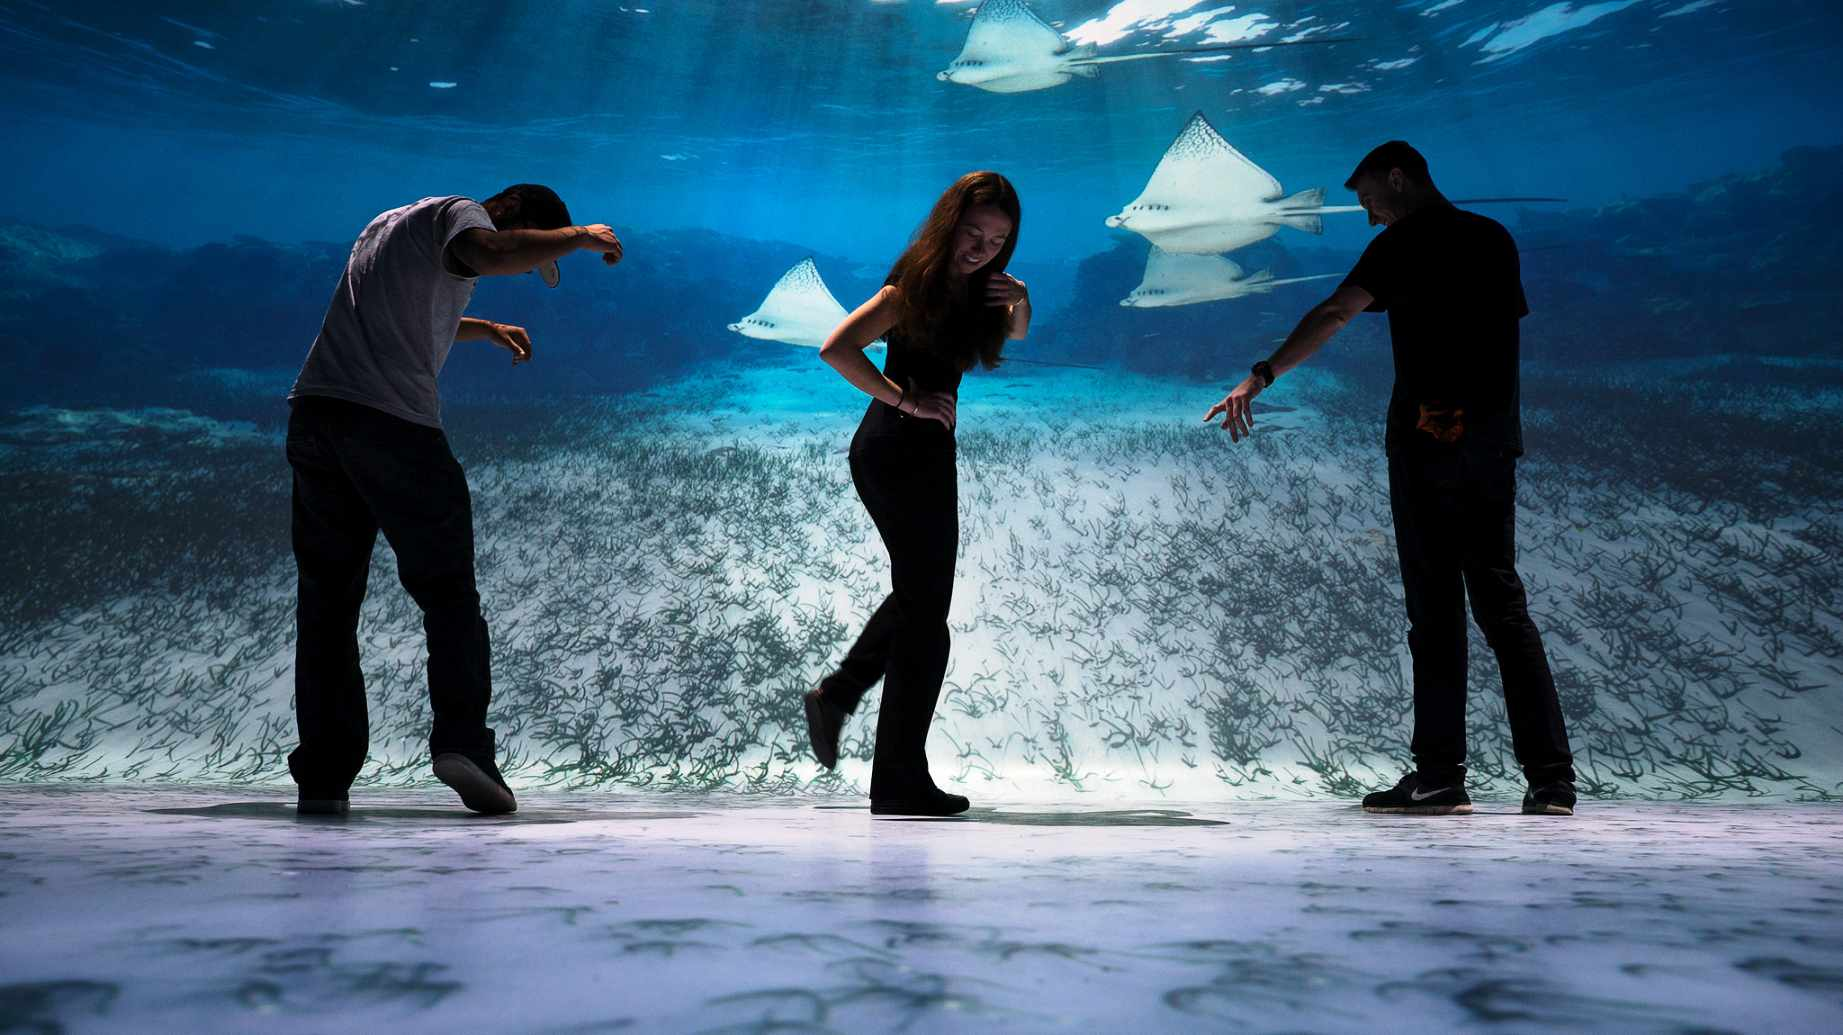 National Geographic Encounter: Ocean Odyssey ground-breaking deep sea immersive experience opens next month in Times Square.